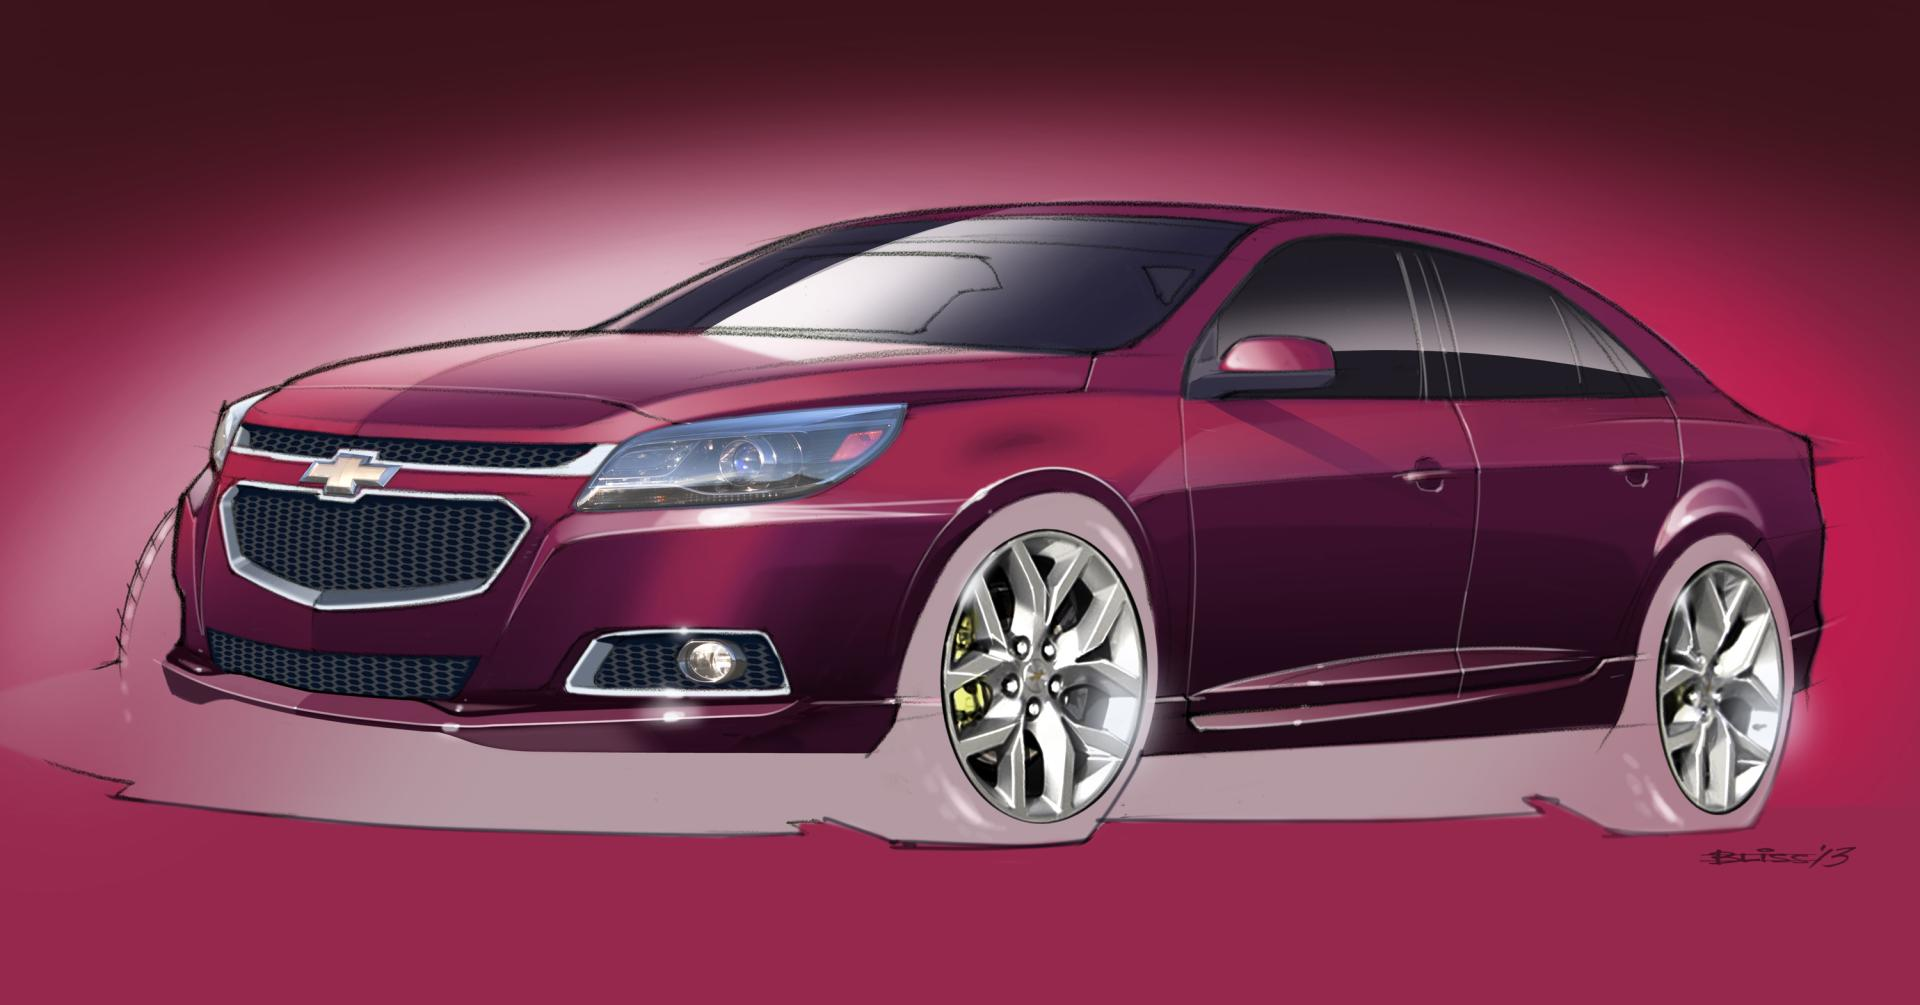 2013 Chevy Malibu Lt >> 2014 Chevrolet Malibu LTZ Concept News and Information